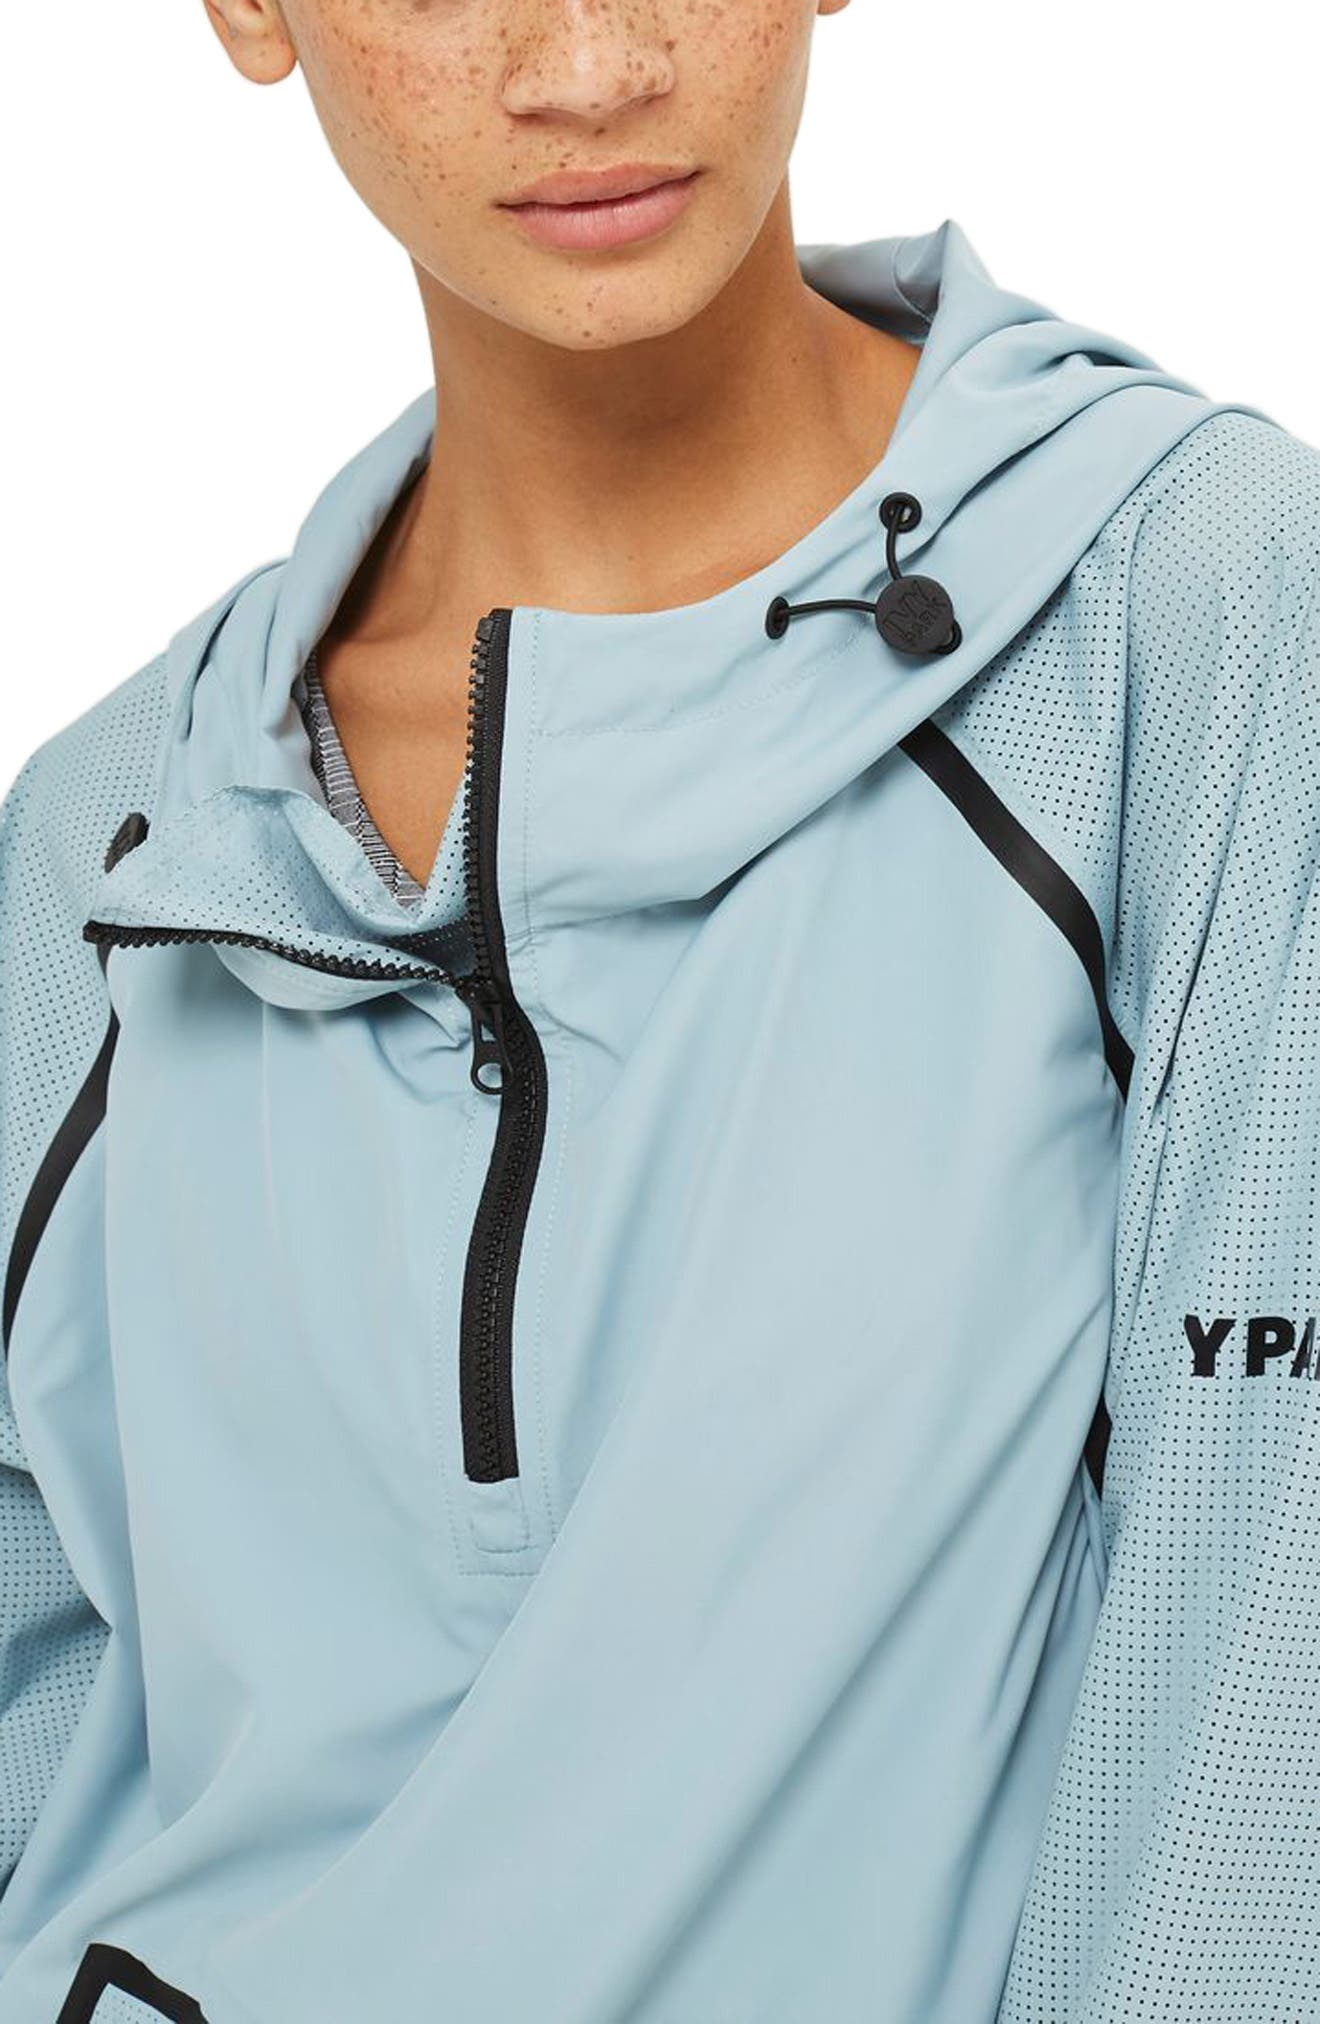 Perforated Pullover Jacket,                             Alternate thumbnail 6, color,                             Porcelain Blue